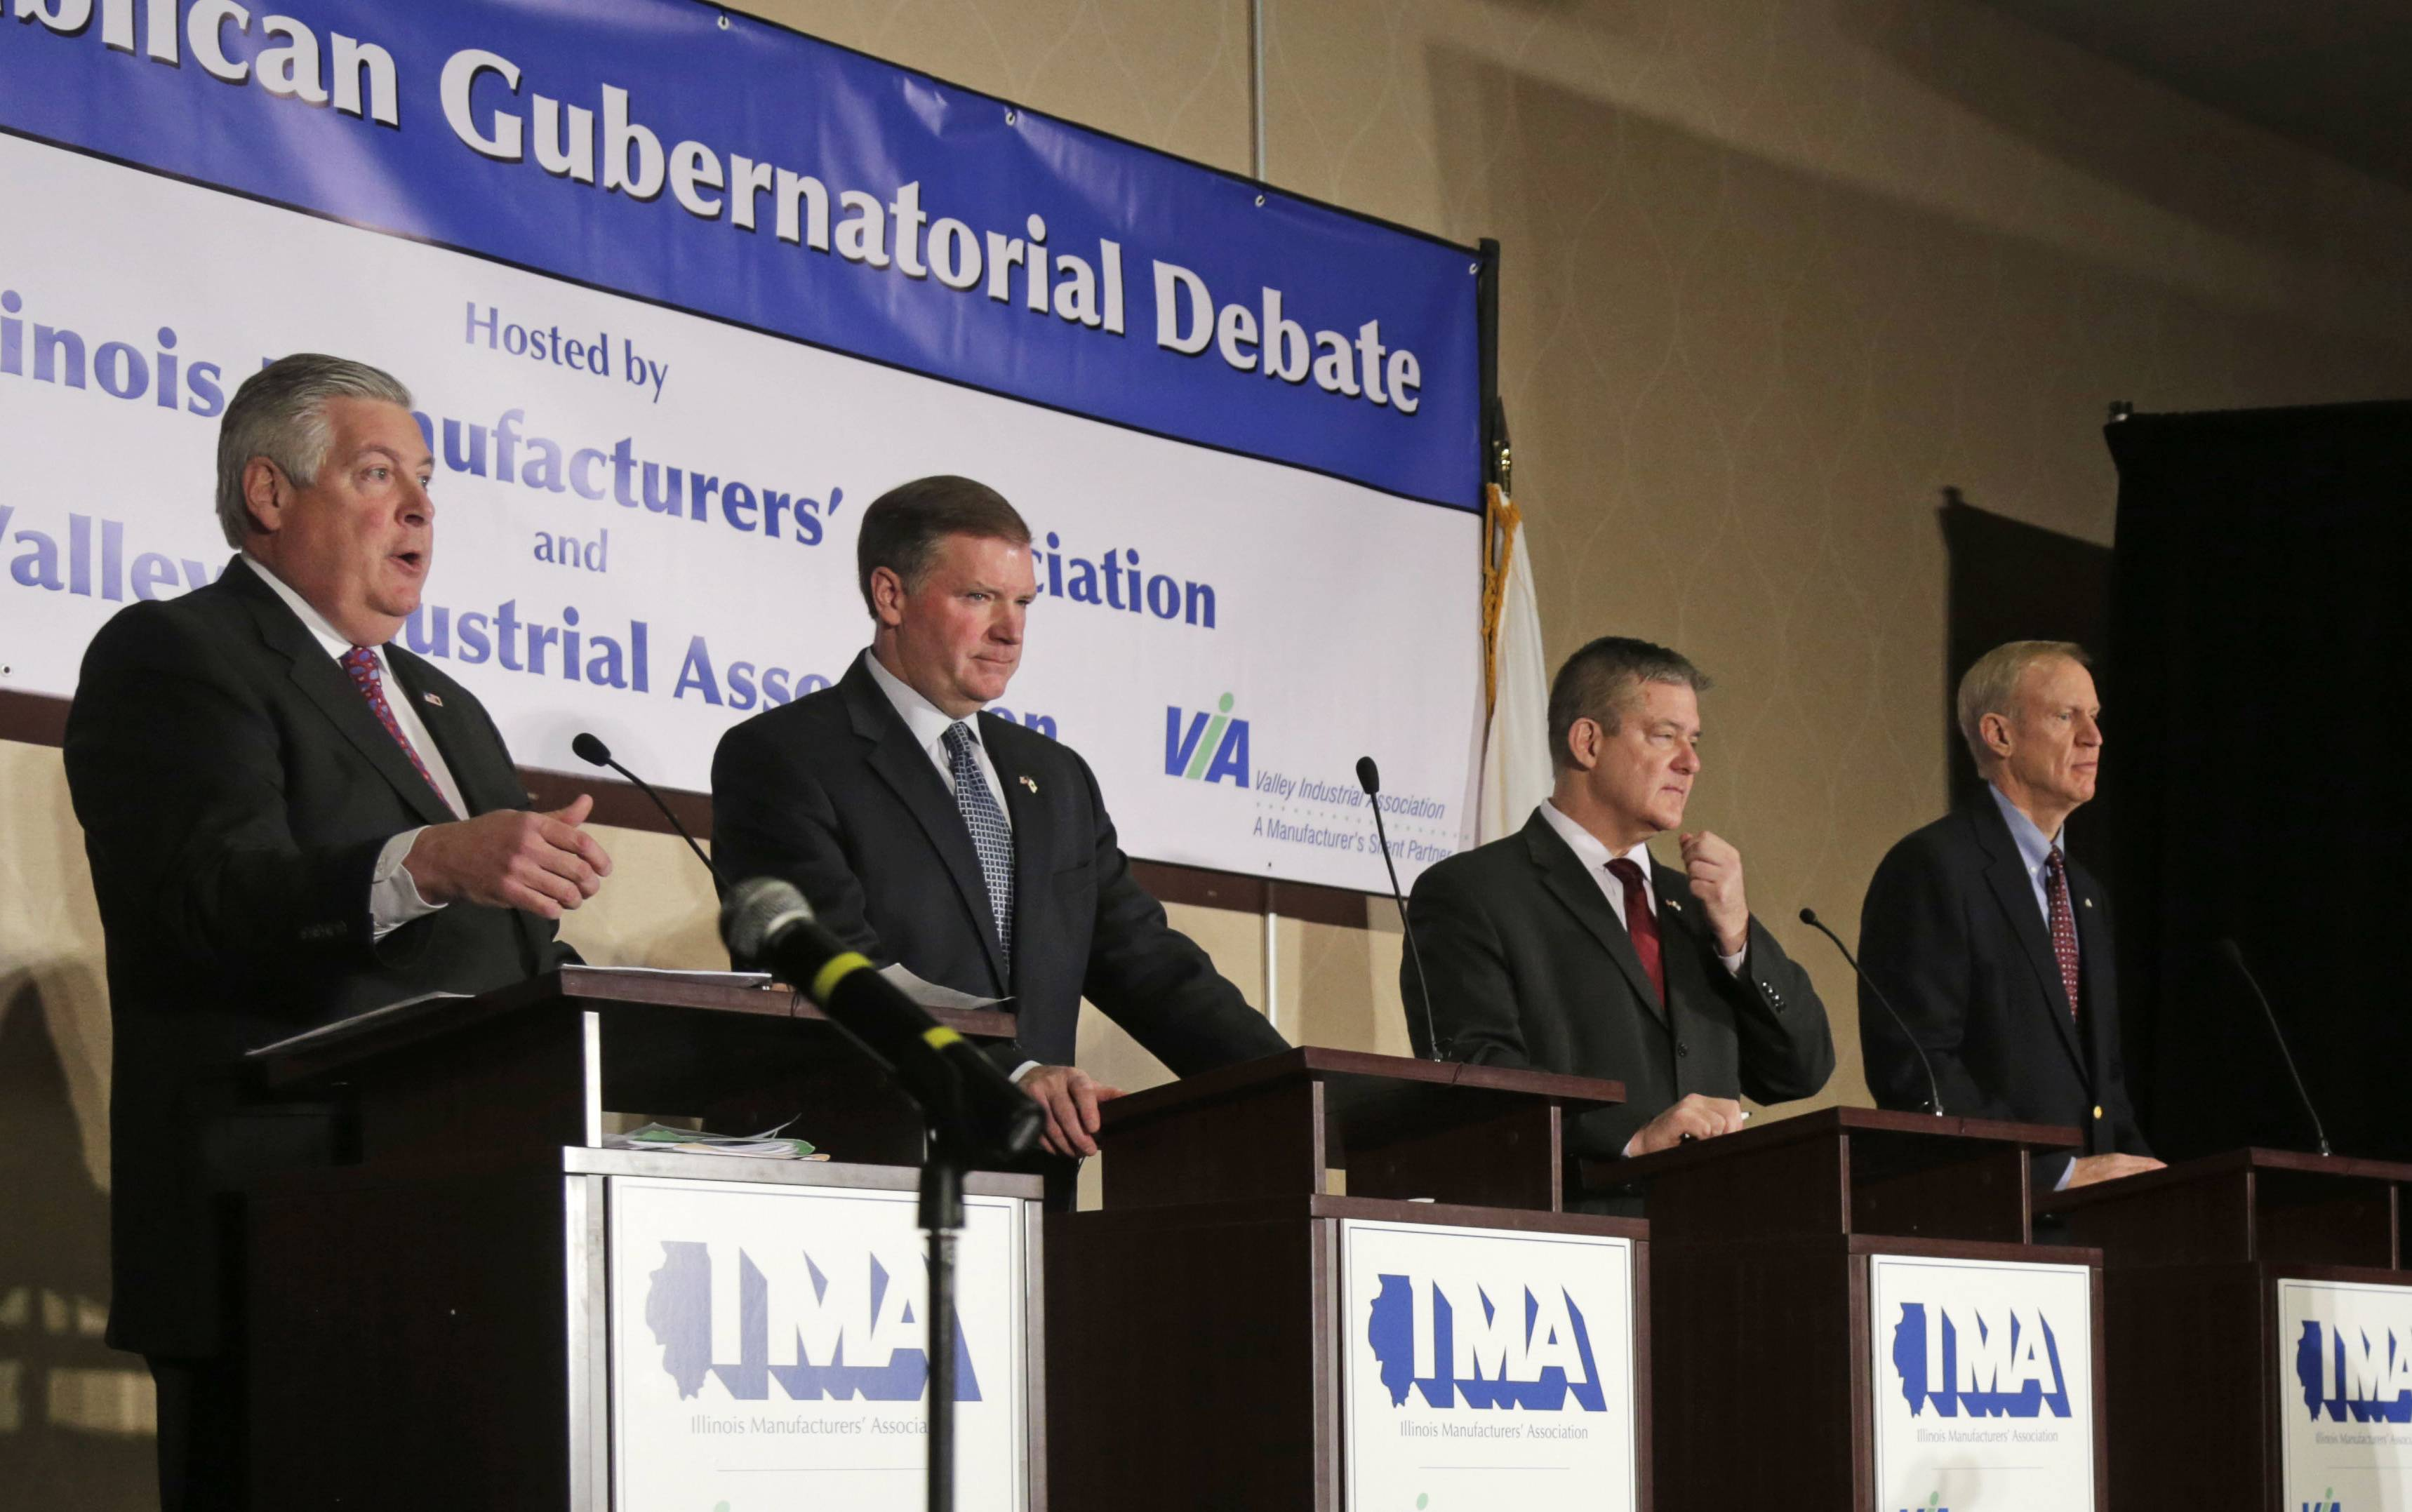 The four candidates seeking the GOP nomination for governor — from left, state Sens. Kirk Dillard and Bill Brady, state Treasurer Dan Rutherford and venture capitalist Bruce Rauner — generally oppose building more prisons.